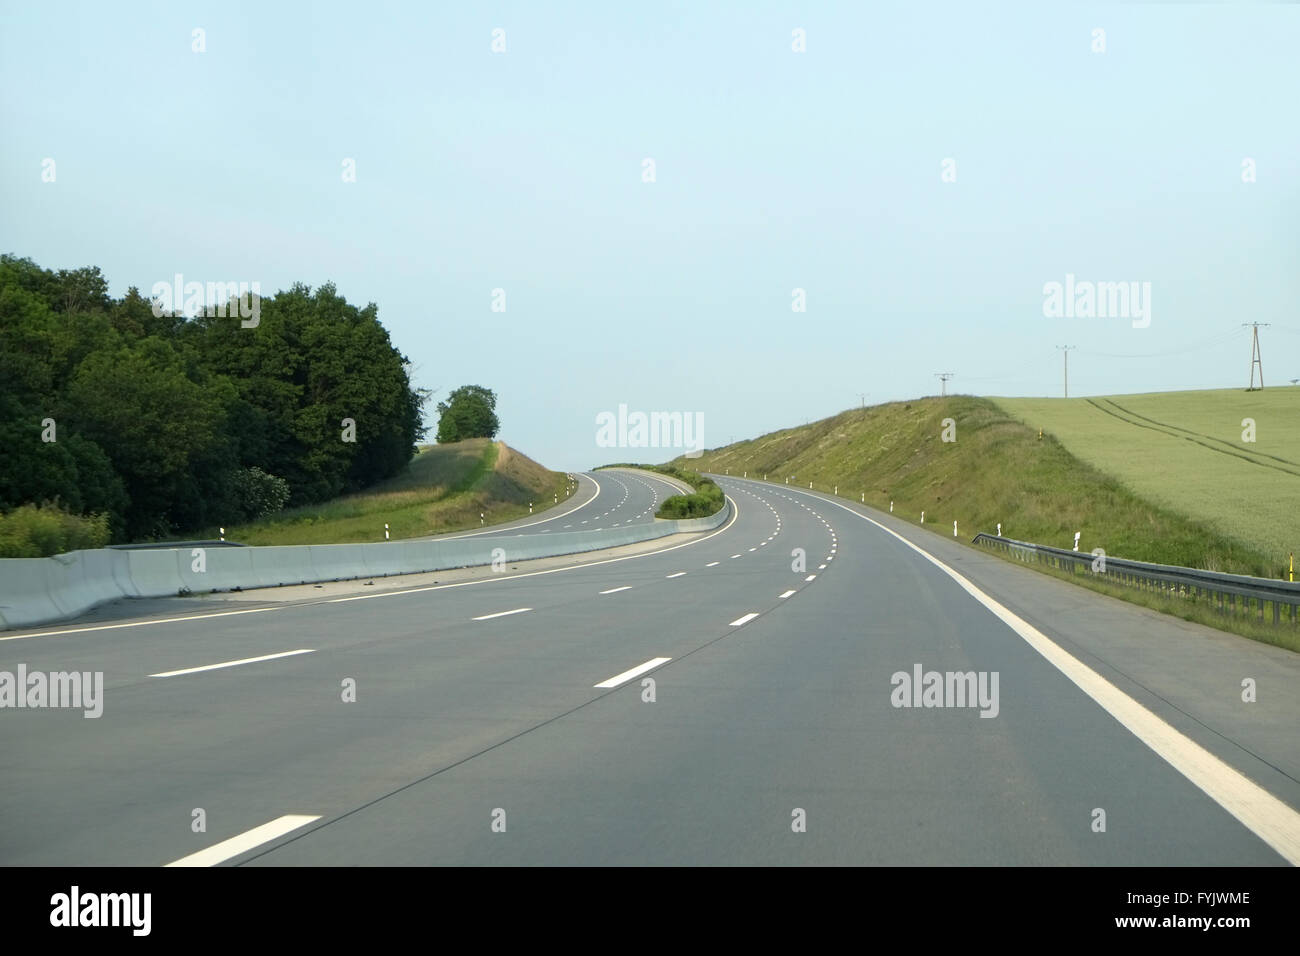 motorway autobahn deutschland stock photo 103062862 alamy. Black Bedroom Furniture Sets. Home Design Ideas